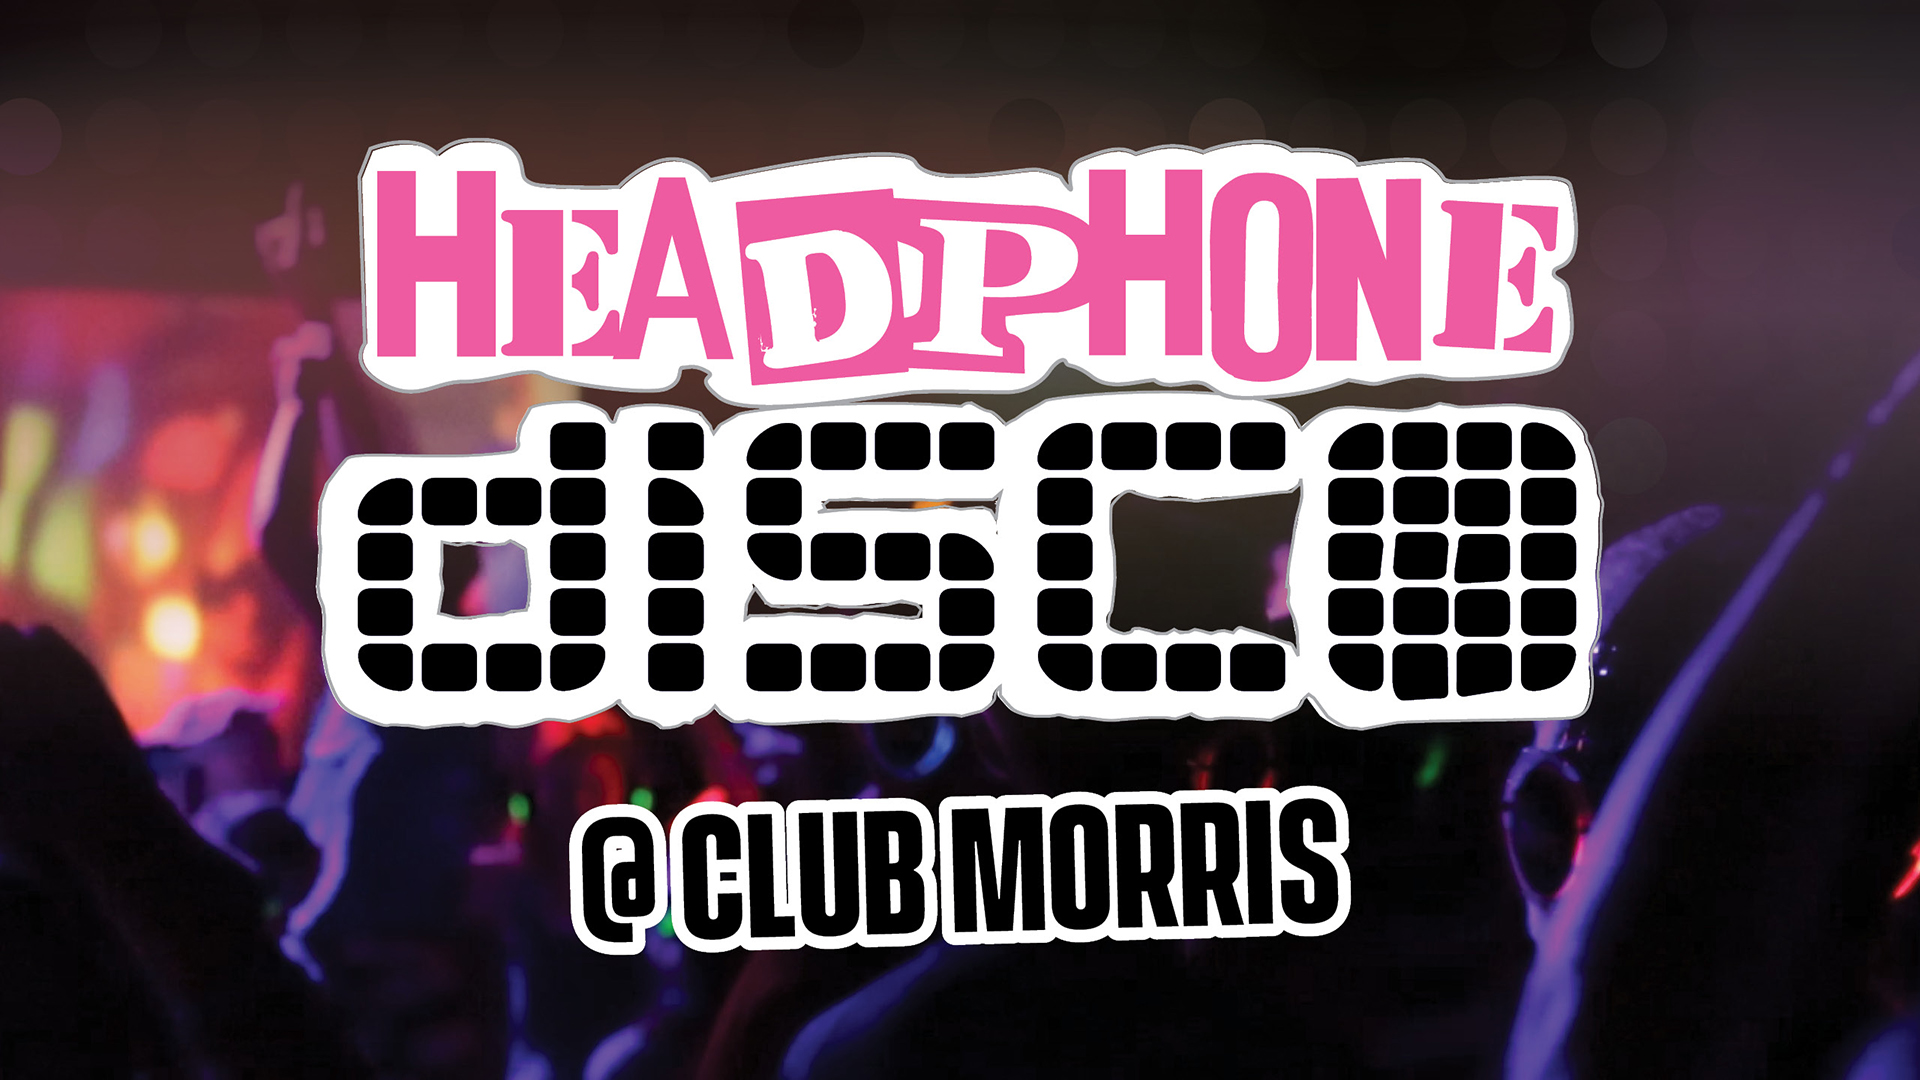 Promotional image for Headphone Disco @ Club Morris